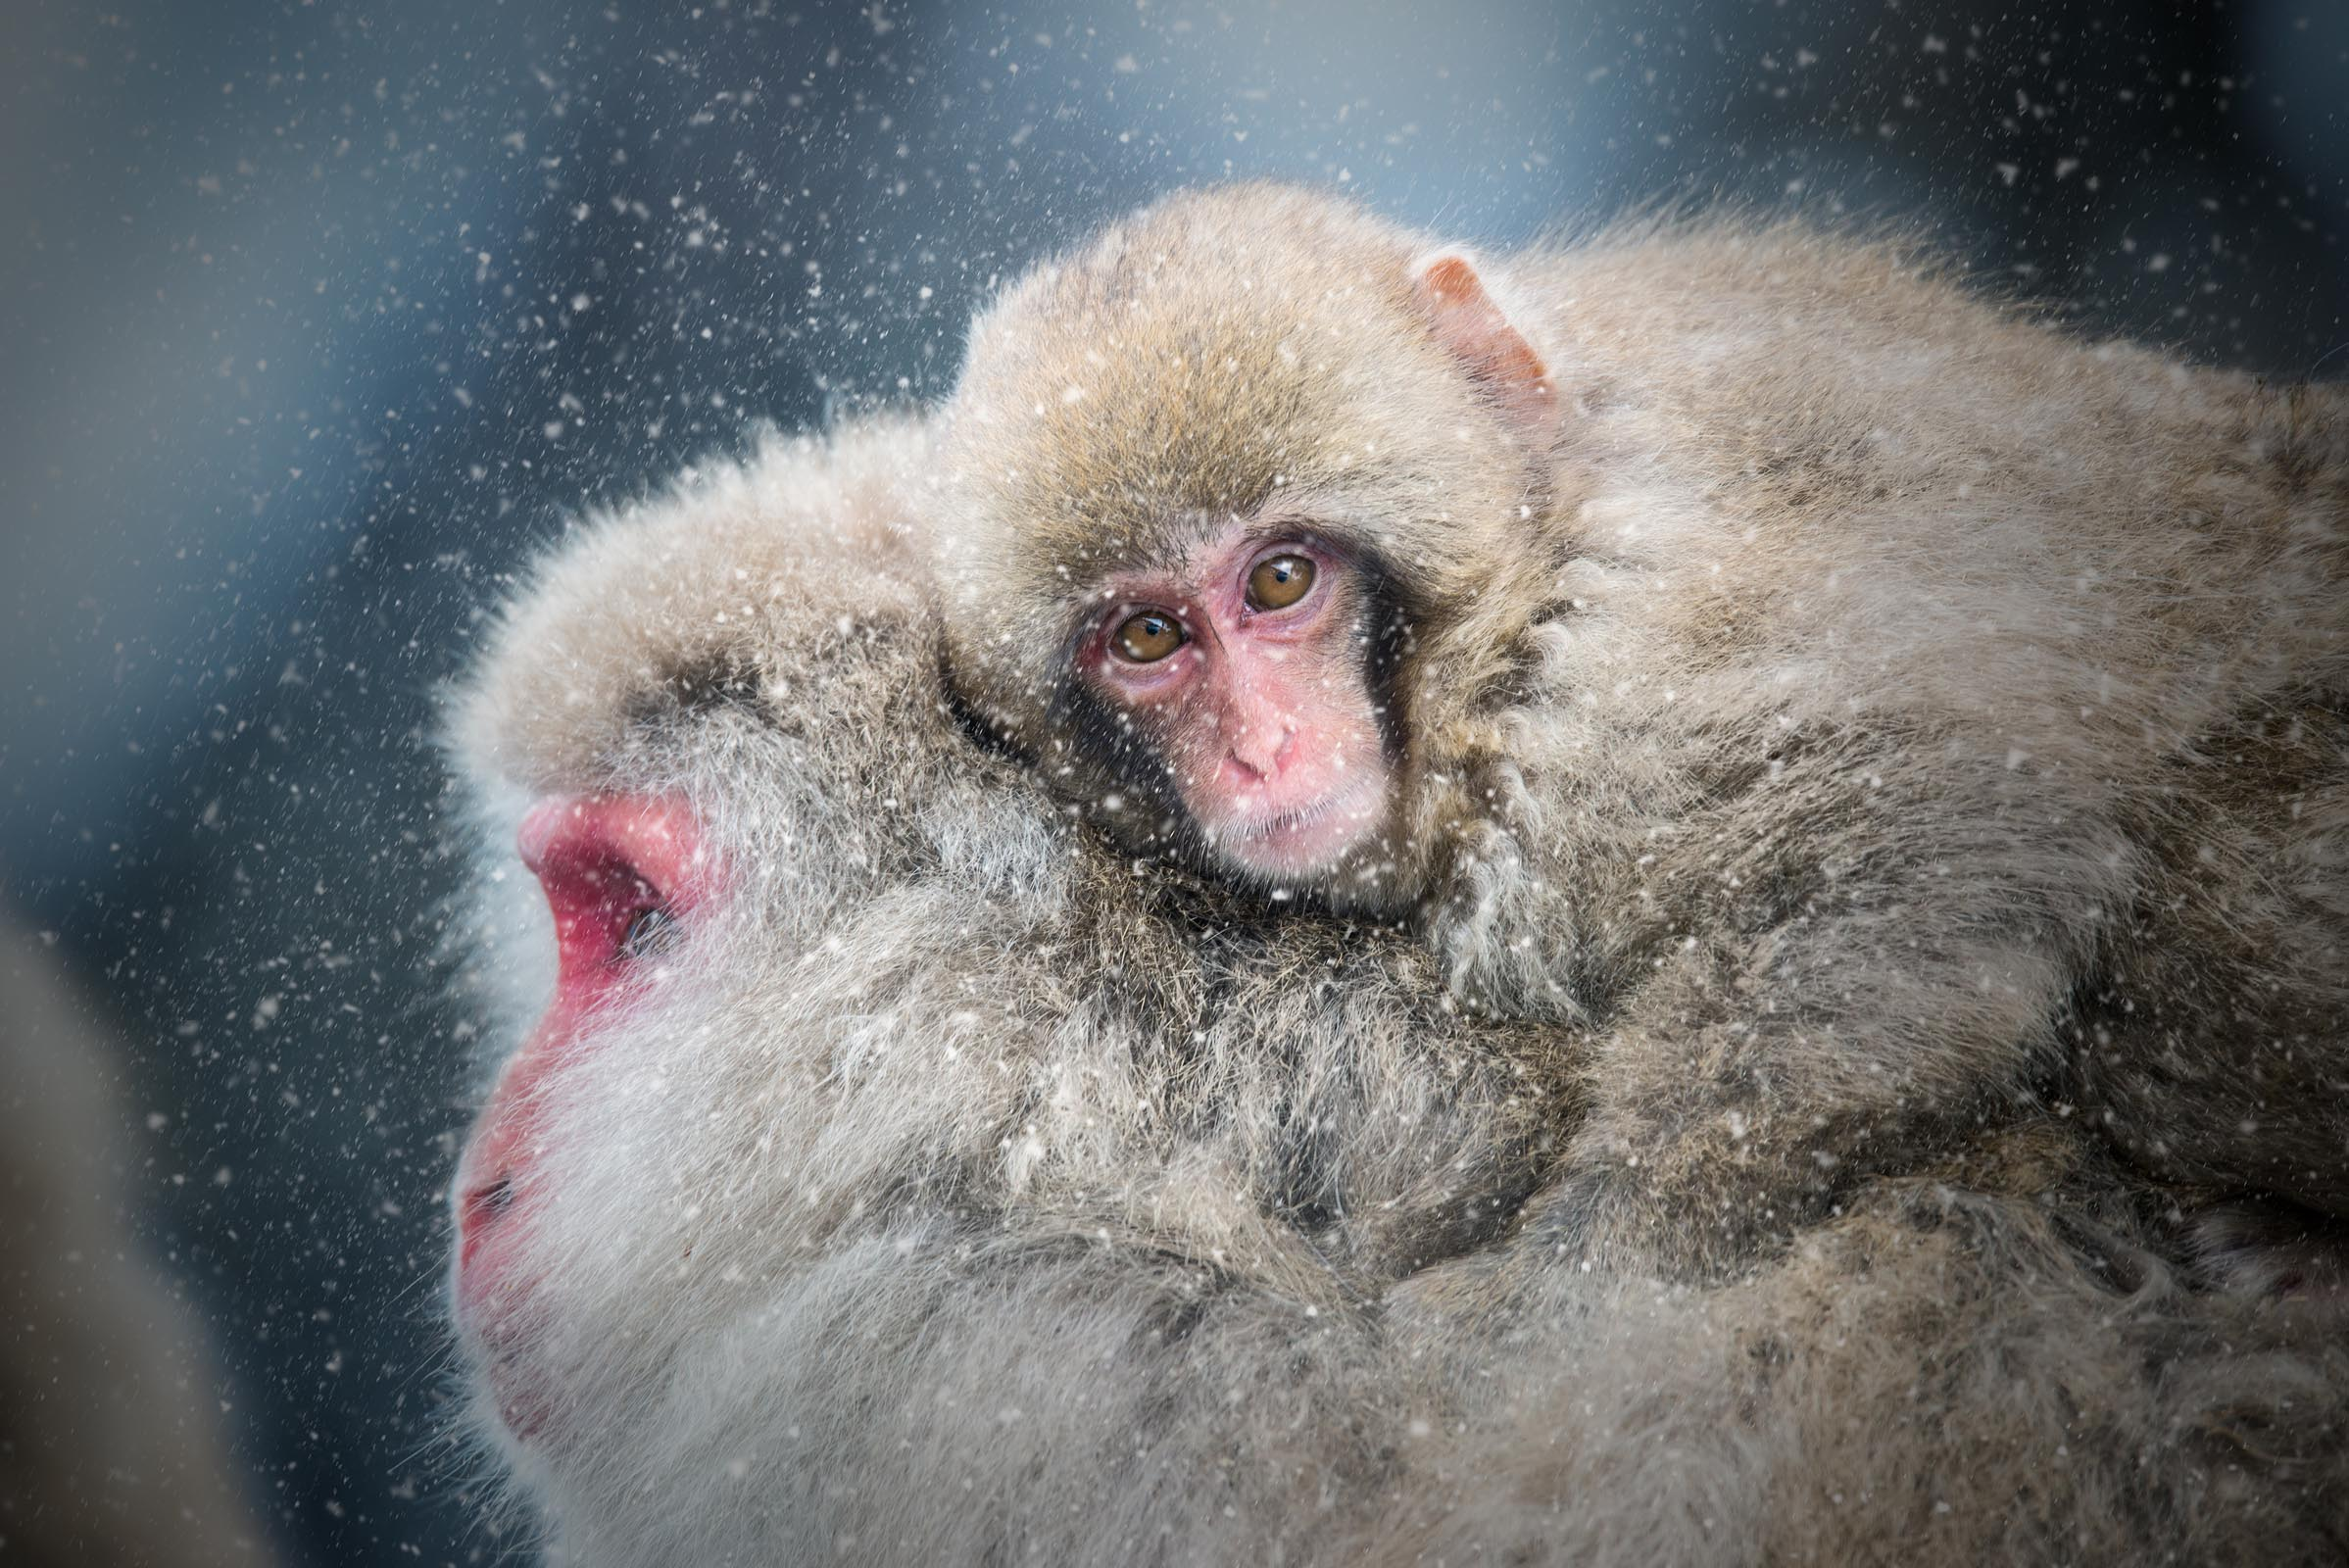 Photograph of Snow Monkey in Nagano, Japan by Brent Goldman Photography